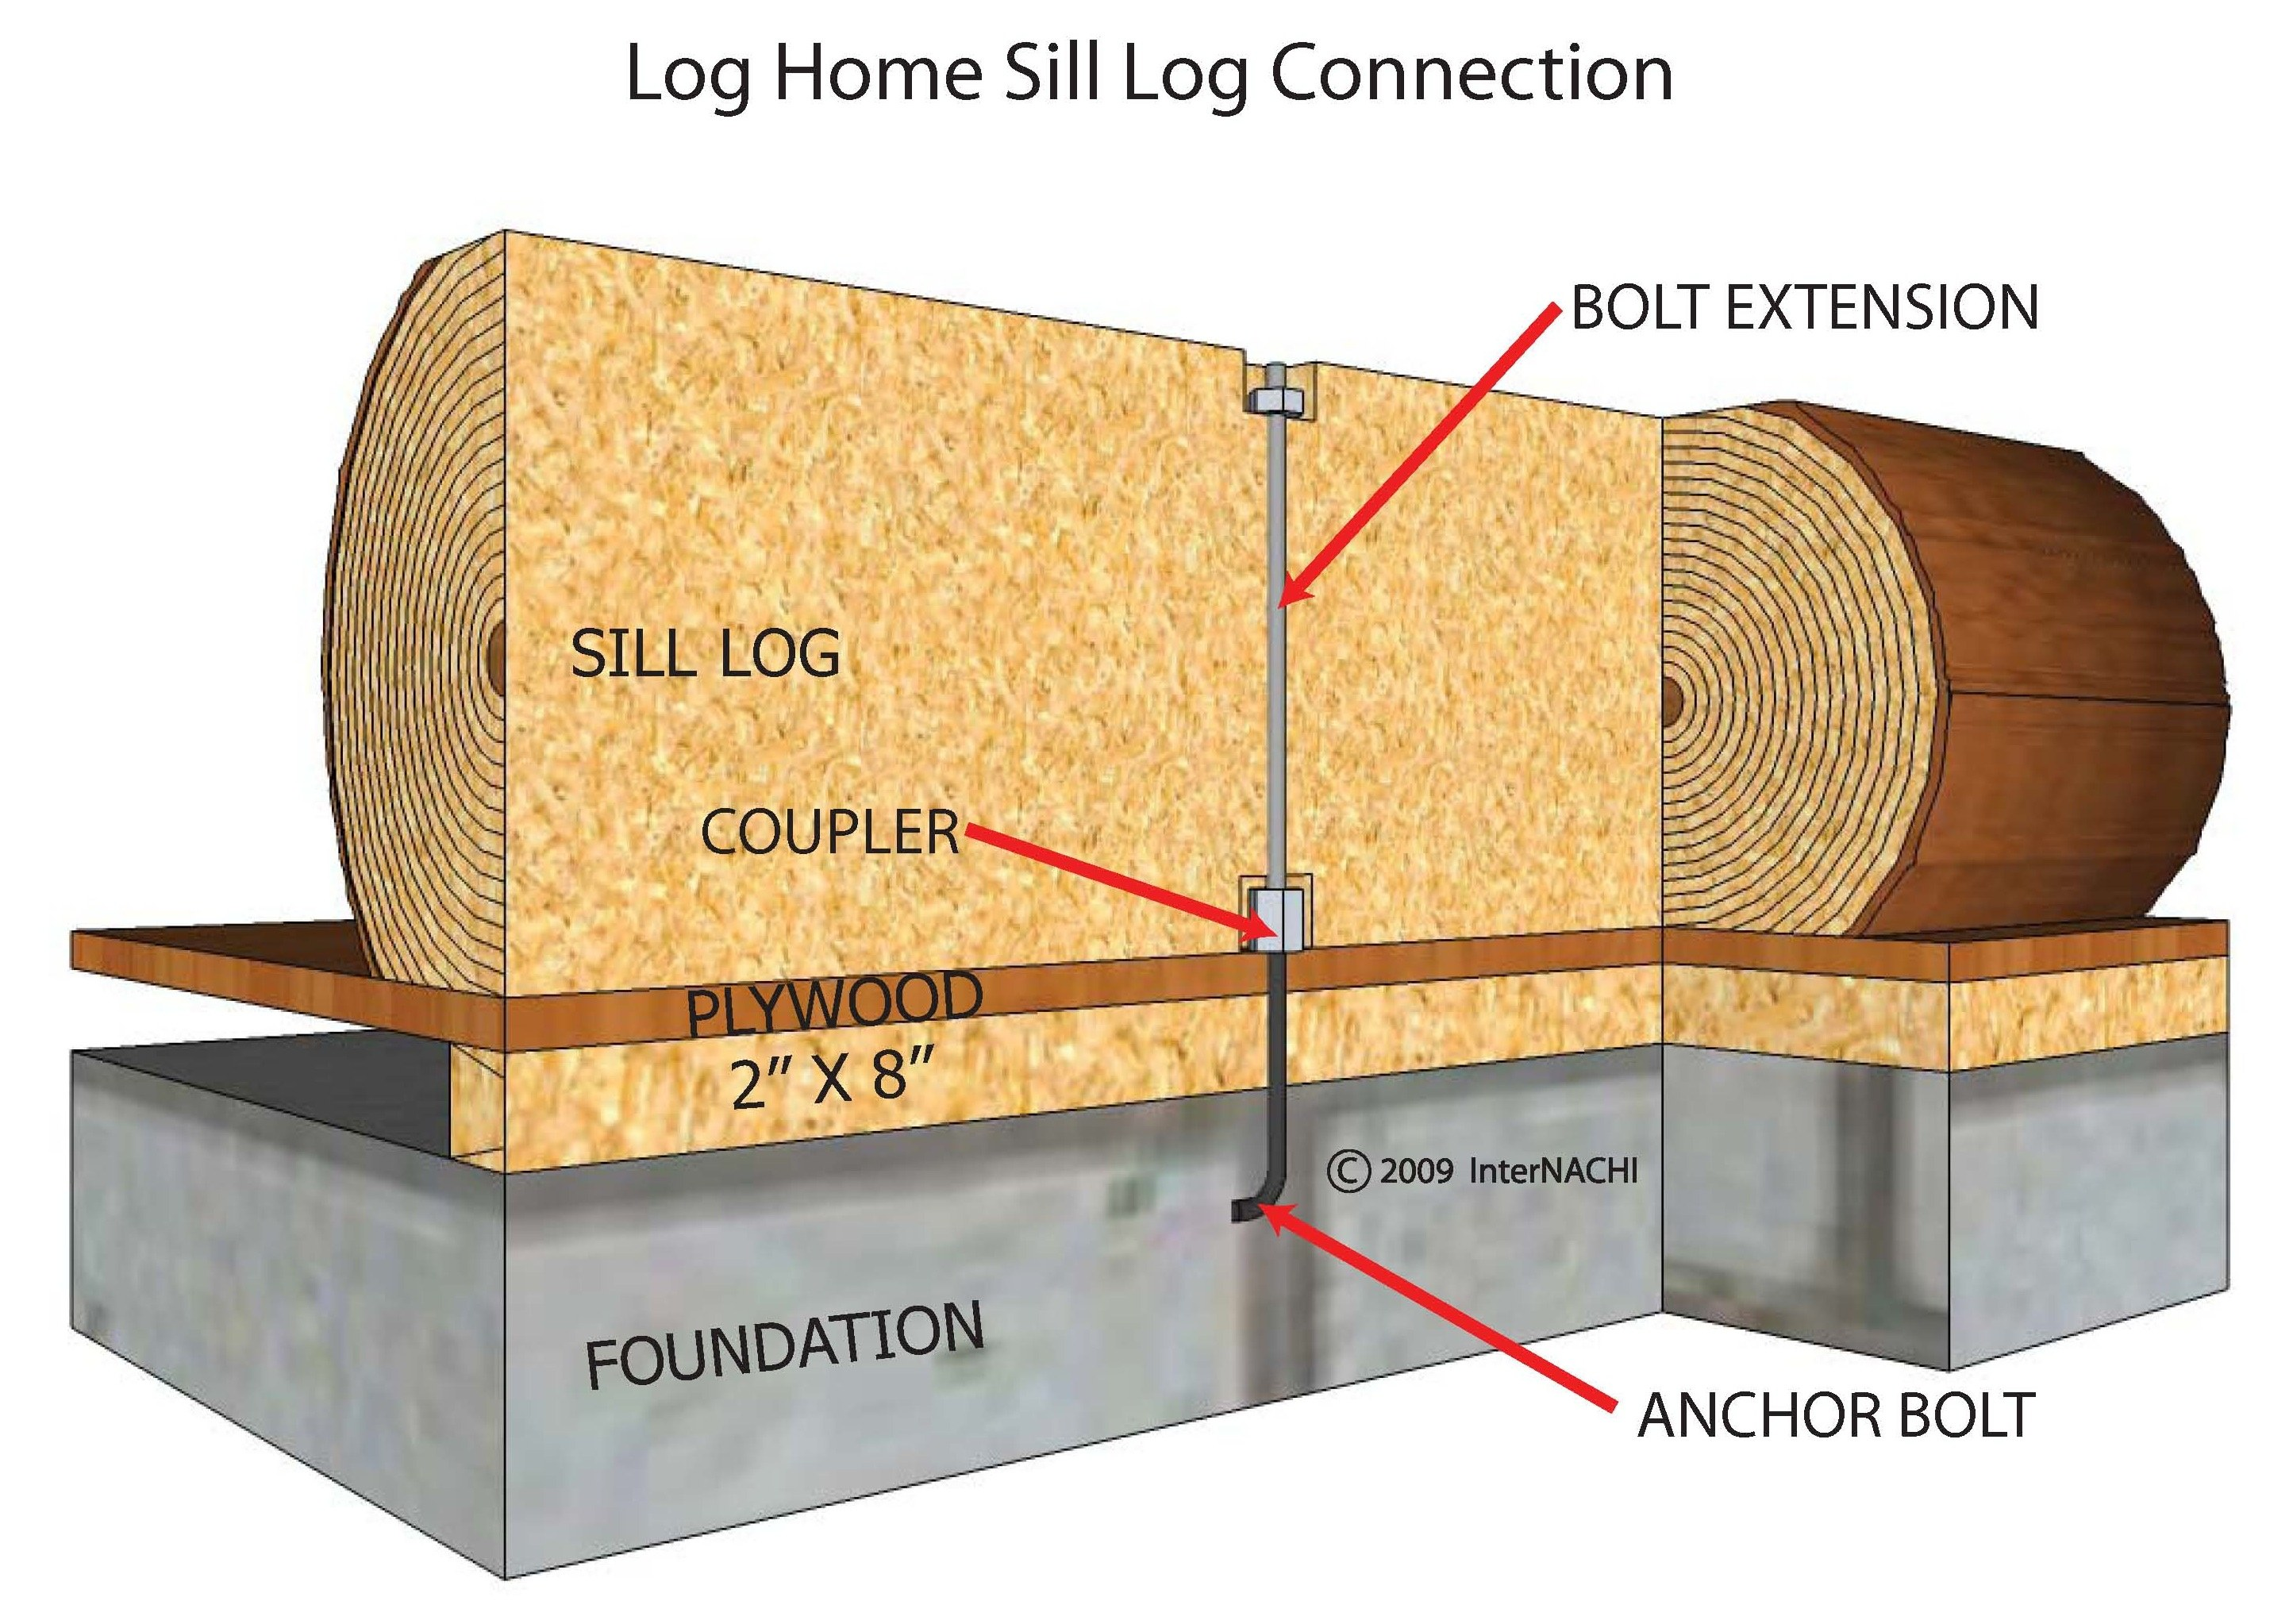 Log home sill log connection.